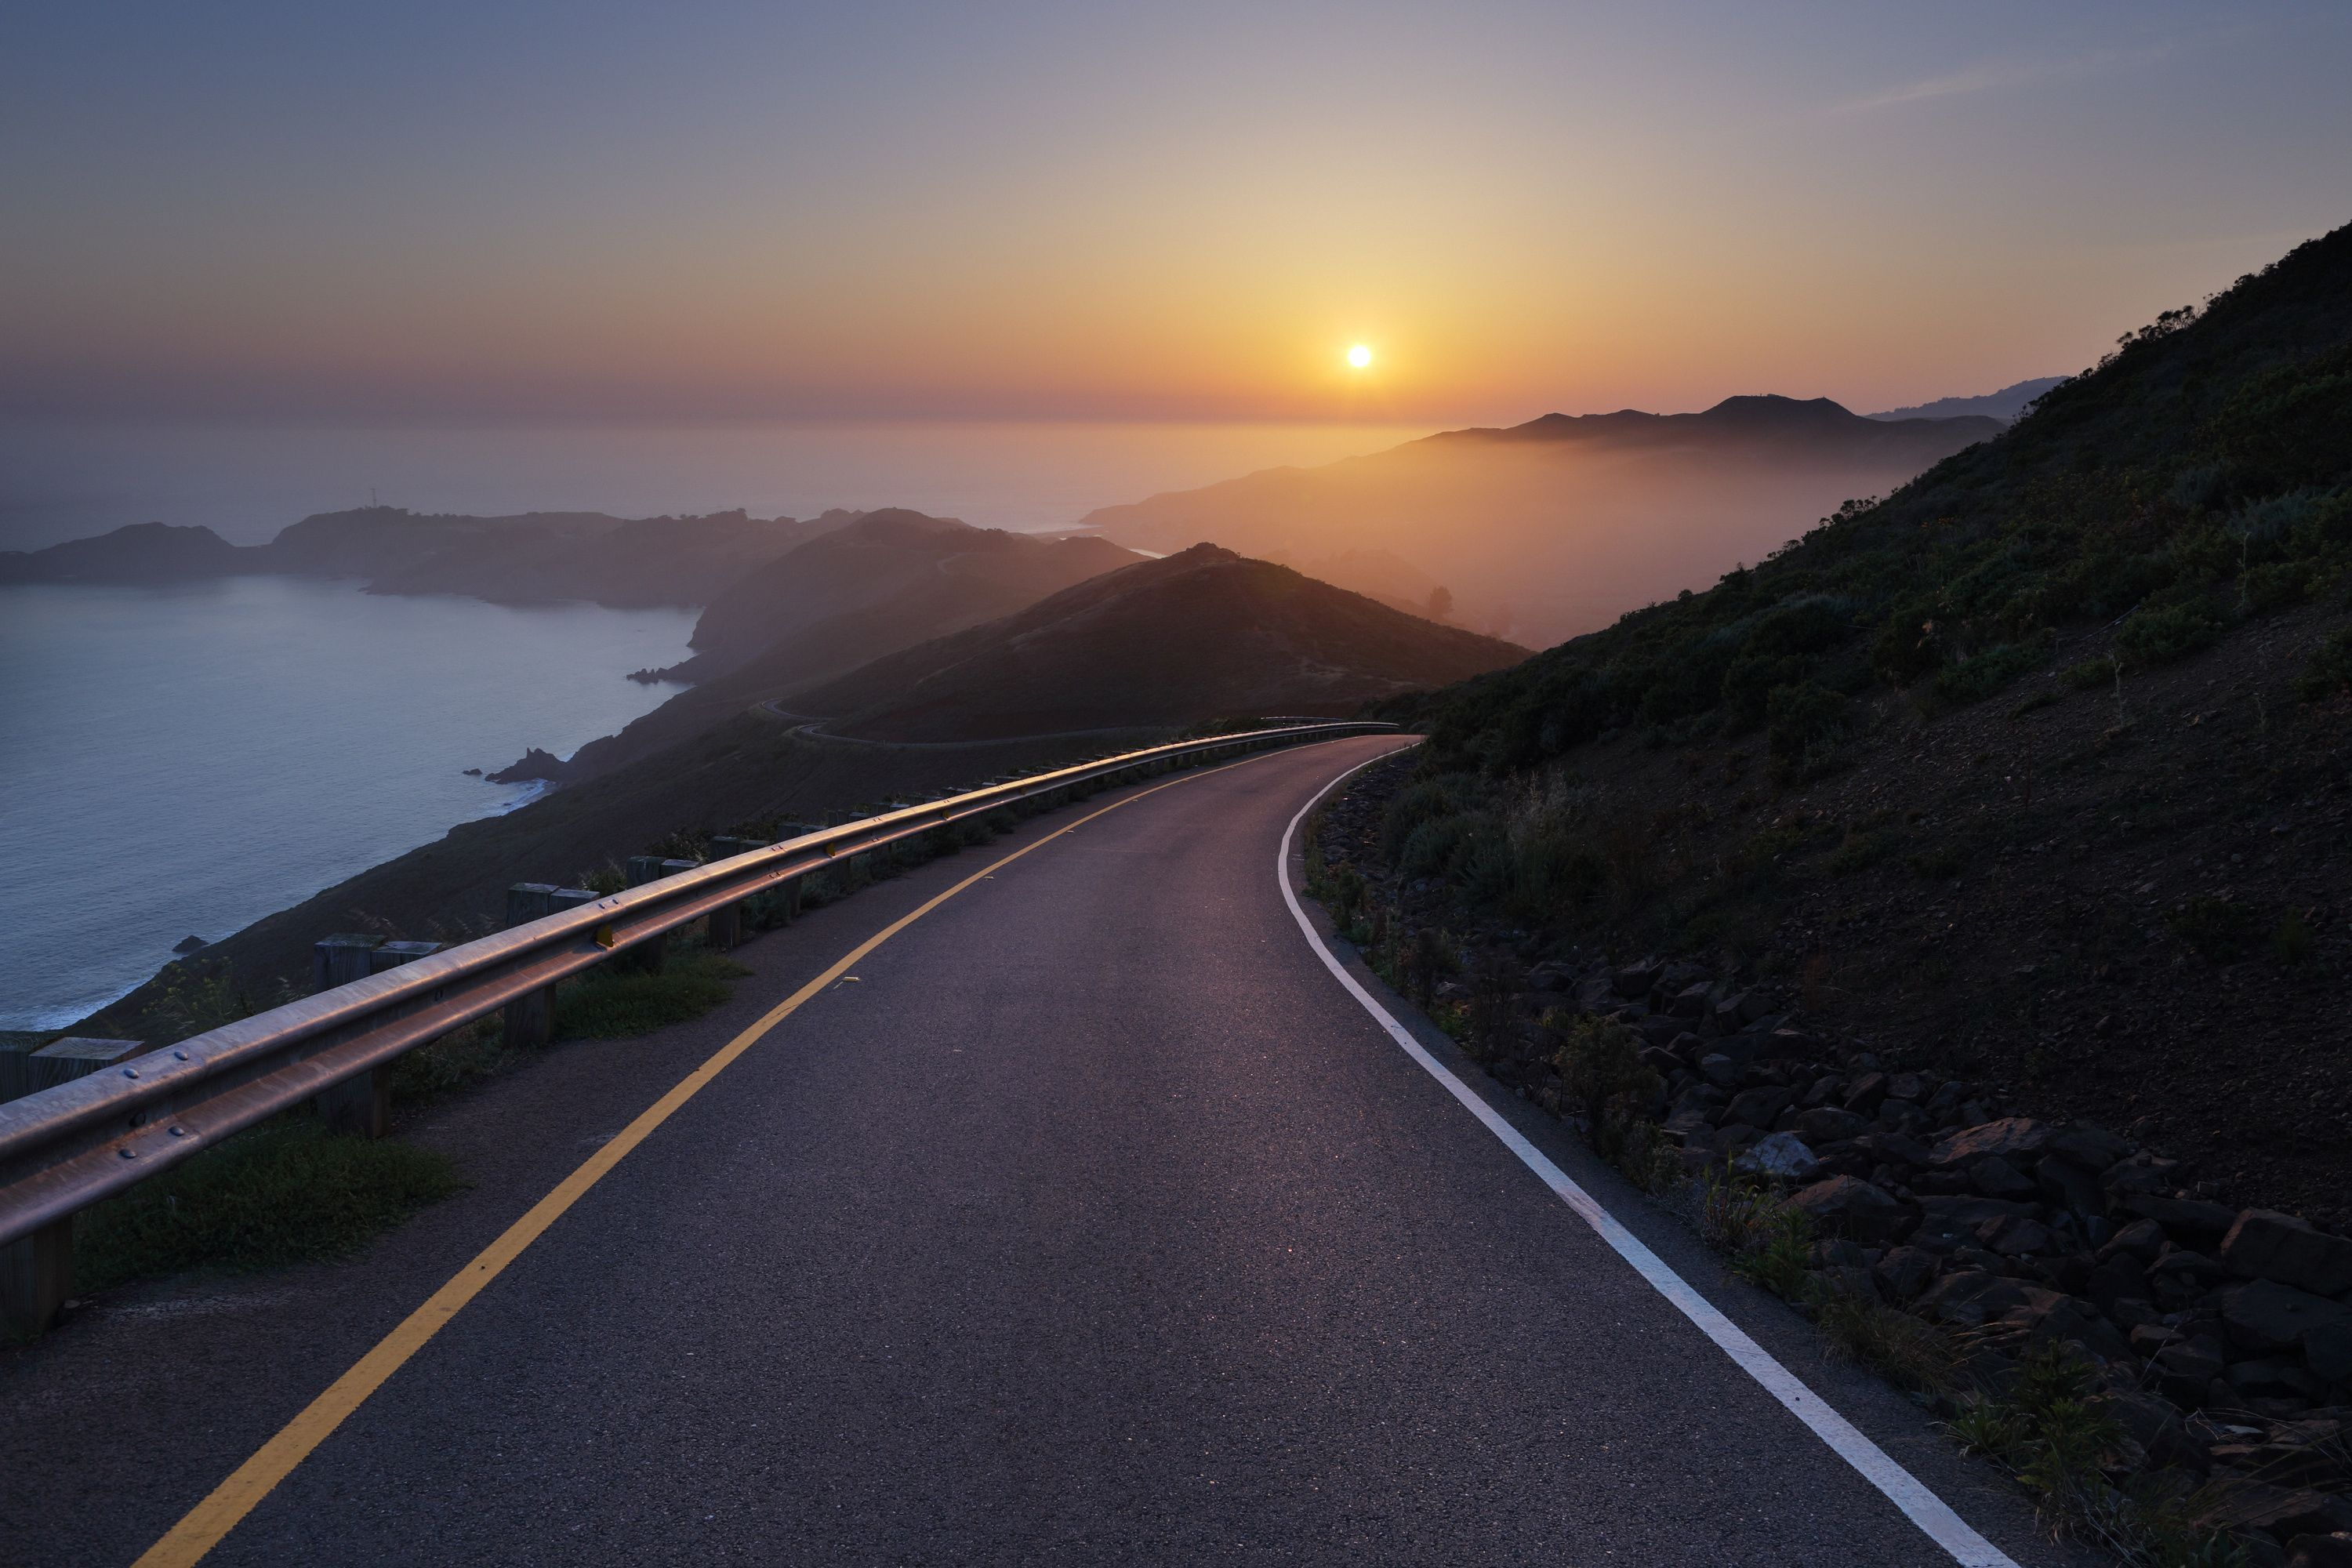 3000x2000 Wallpaper Conzelman Road Sunset Turning Road Sea New Nature Wallpaper Desktop Background Nature Nature Wallpaper